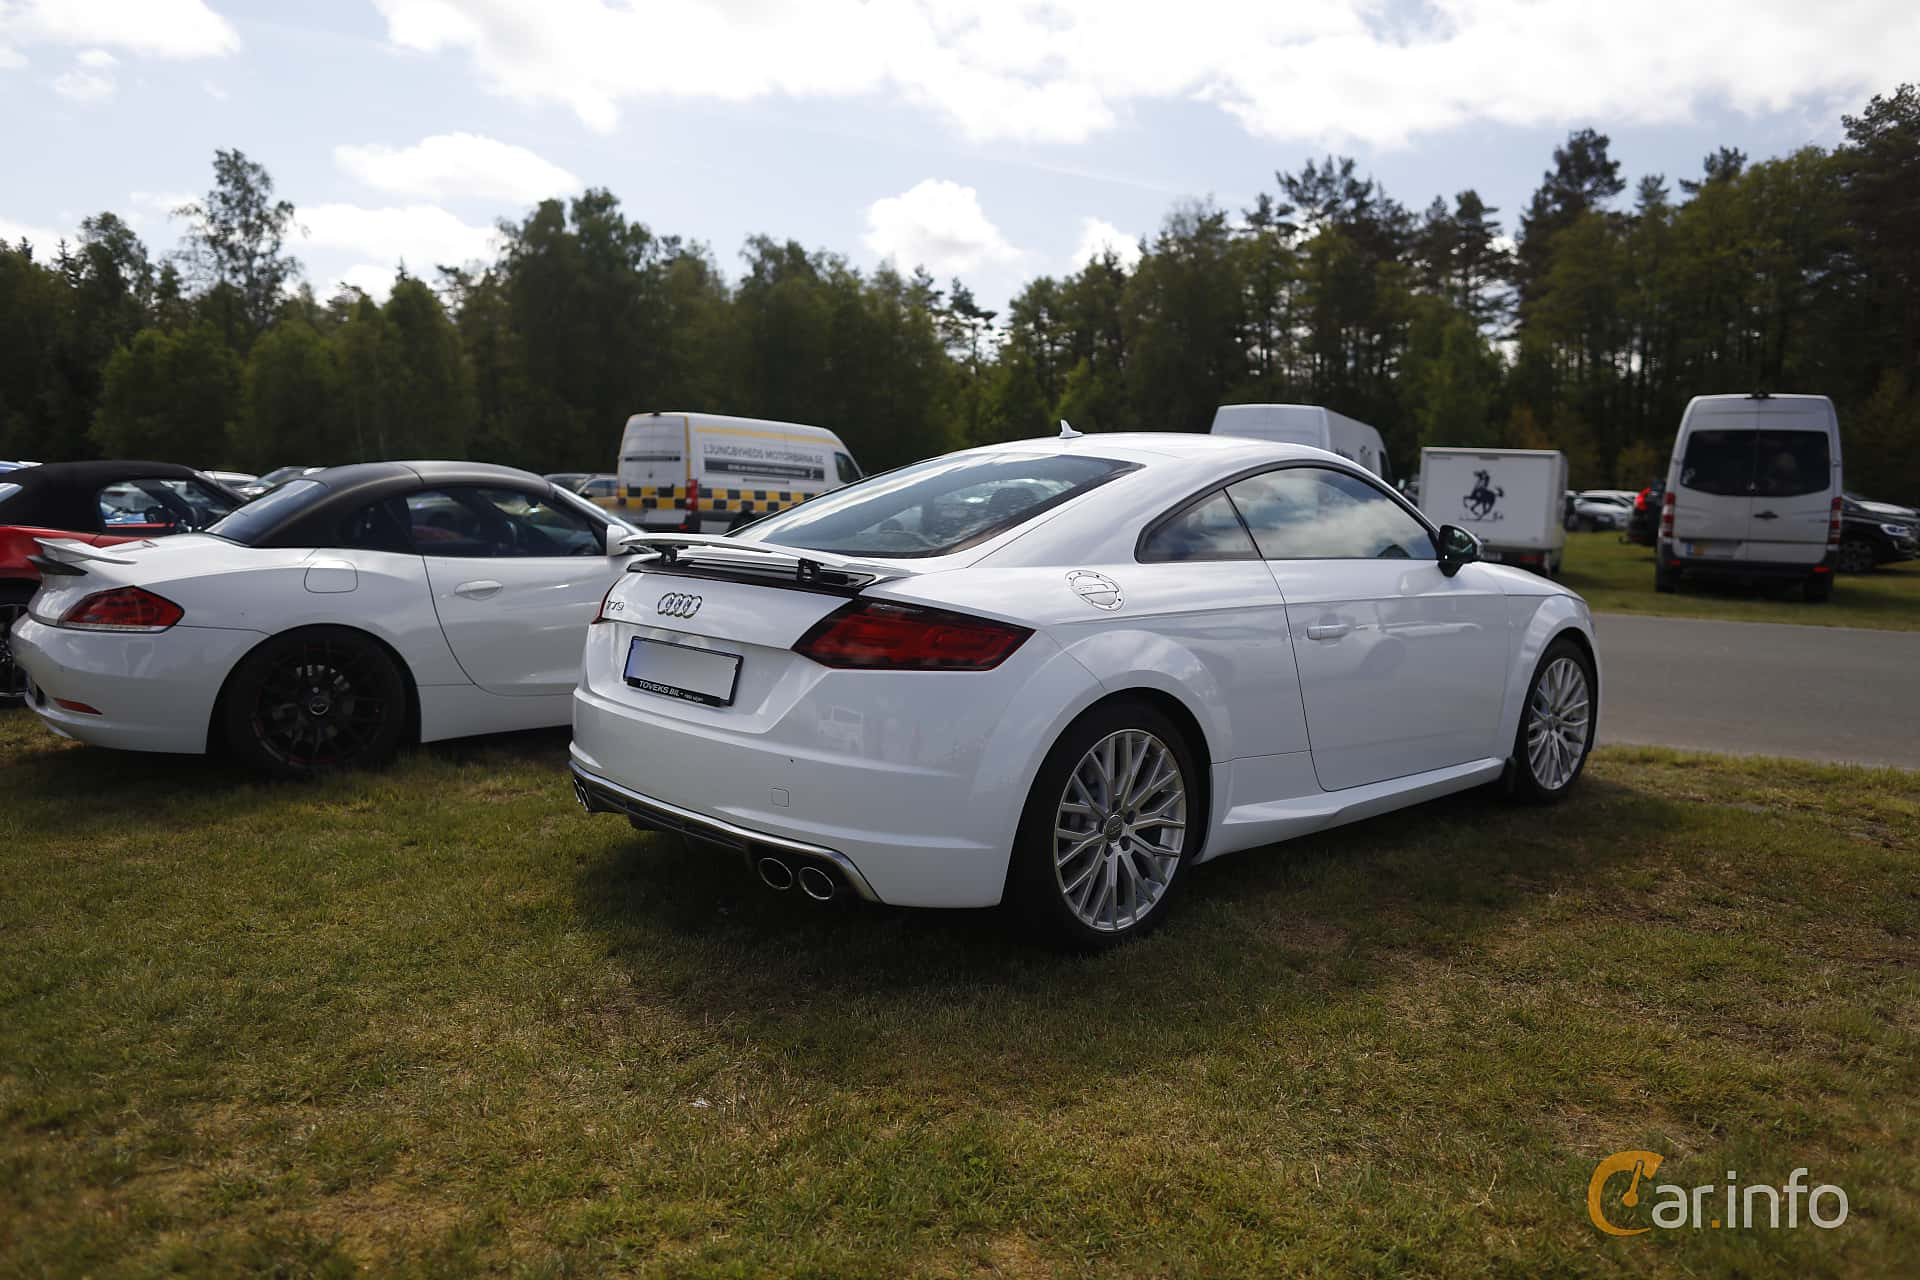 Audi TTS Coupé 2.0 TFSI quattro Manual, 310hp, 2018 at Anderstorp Sportbilsfestival 2019